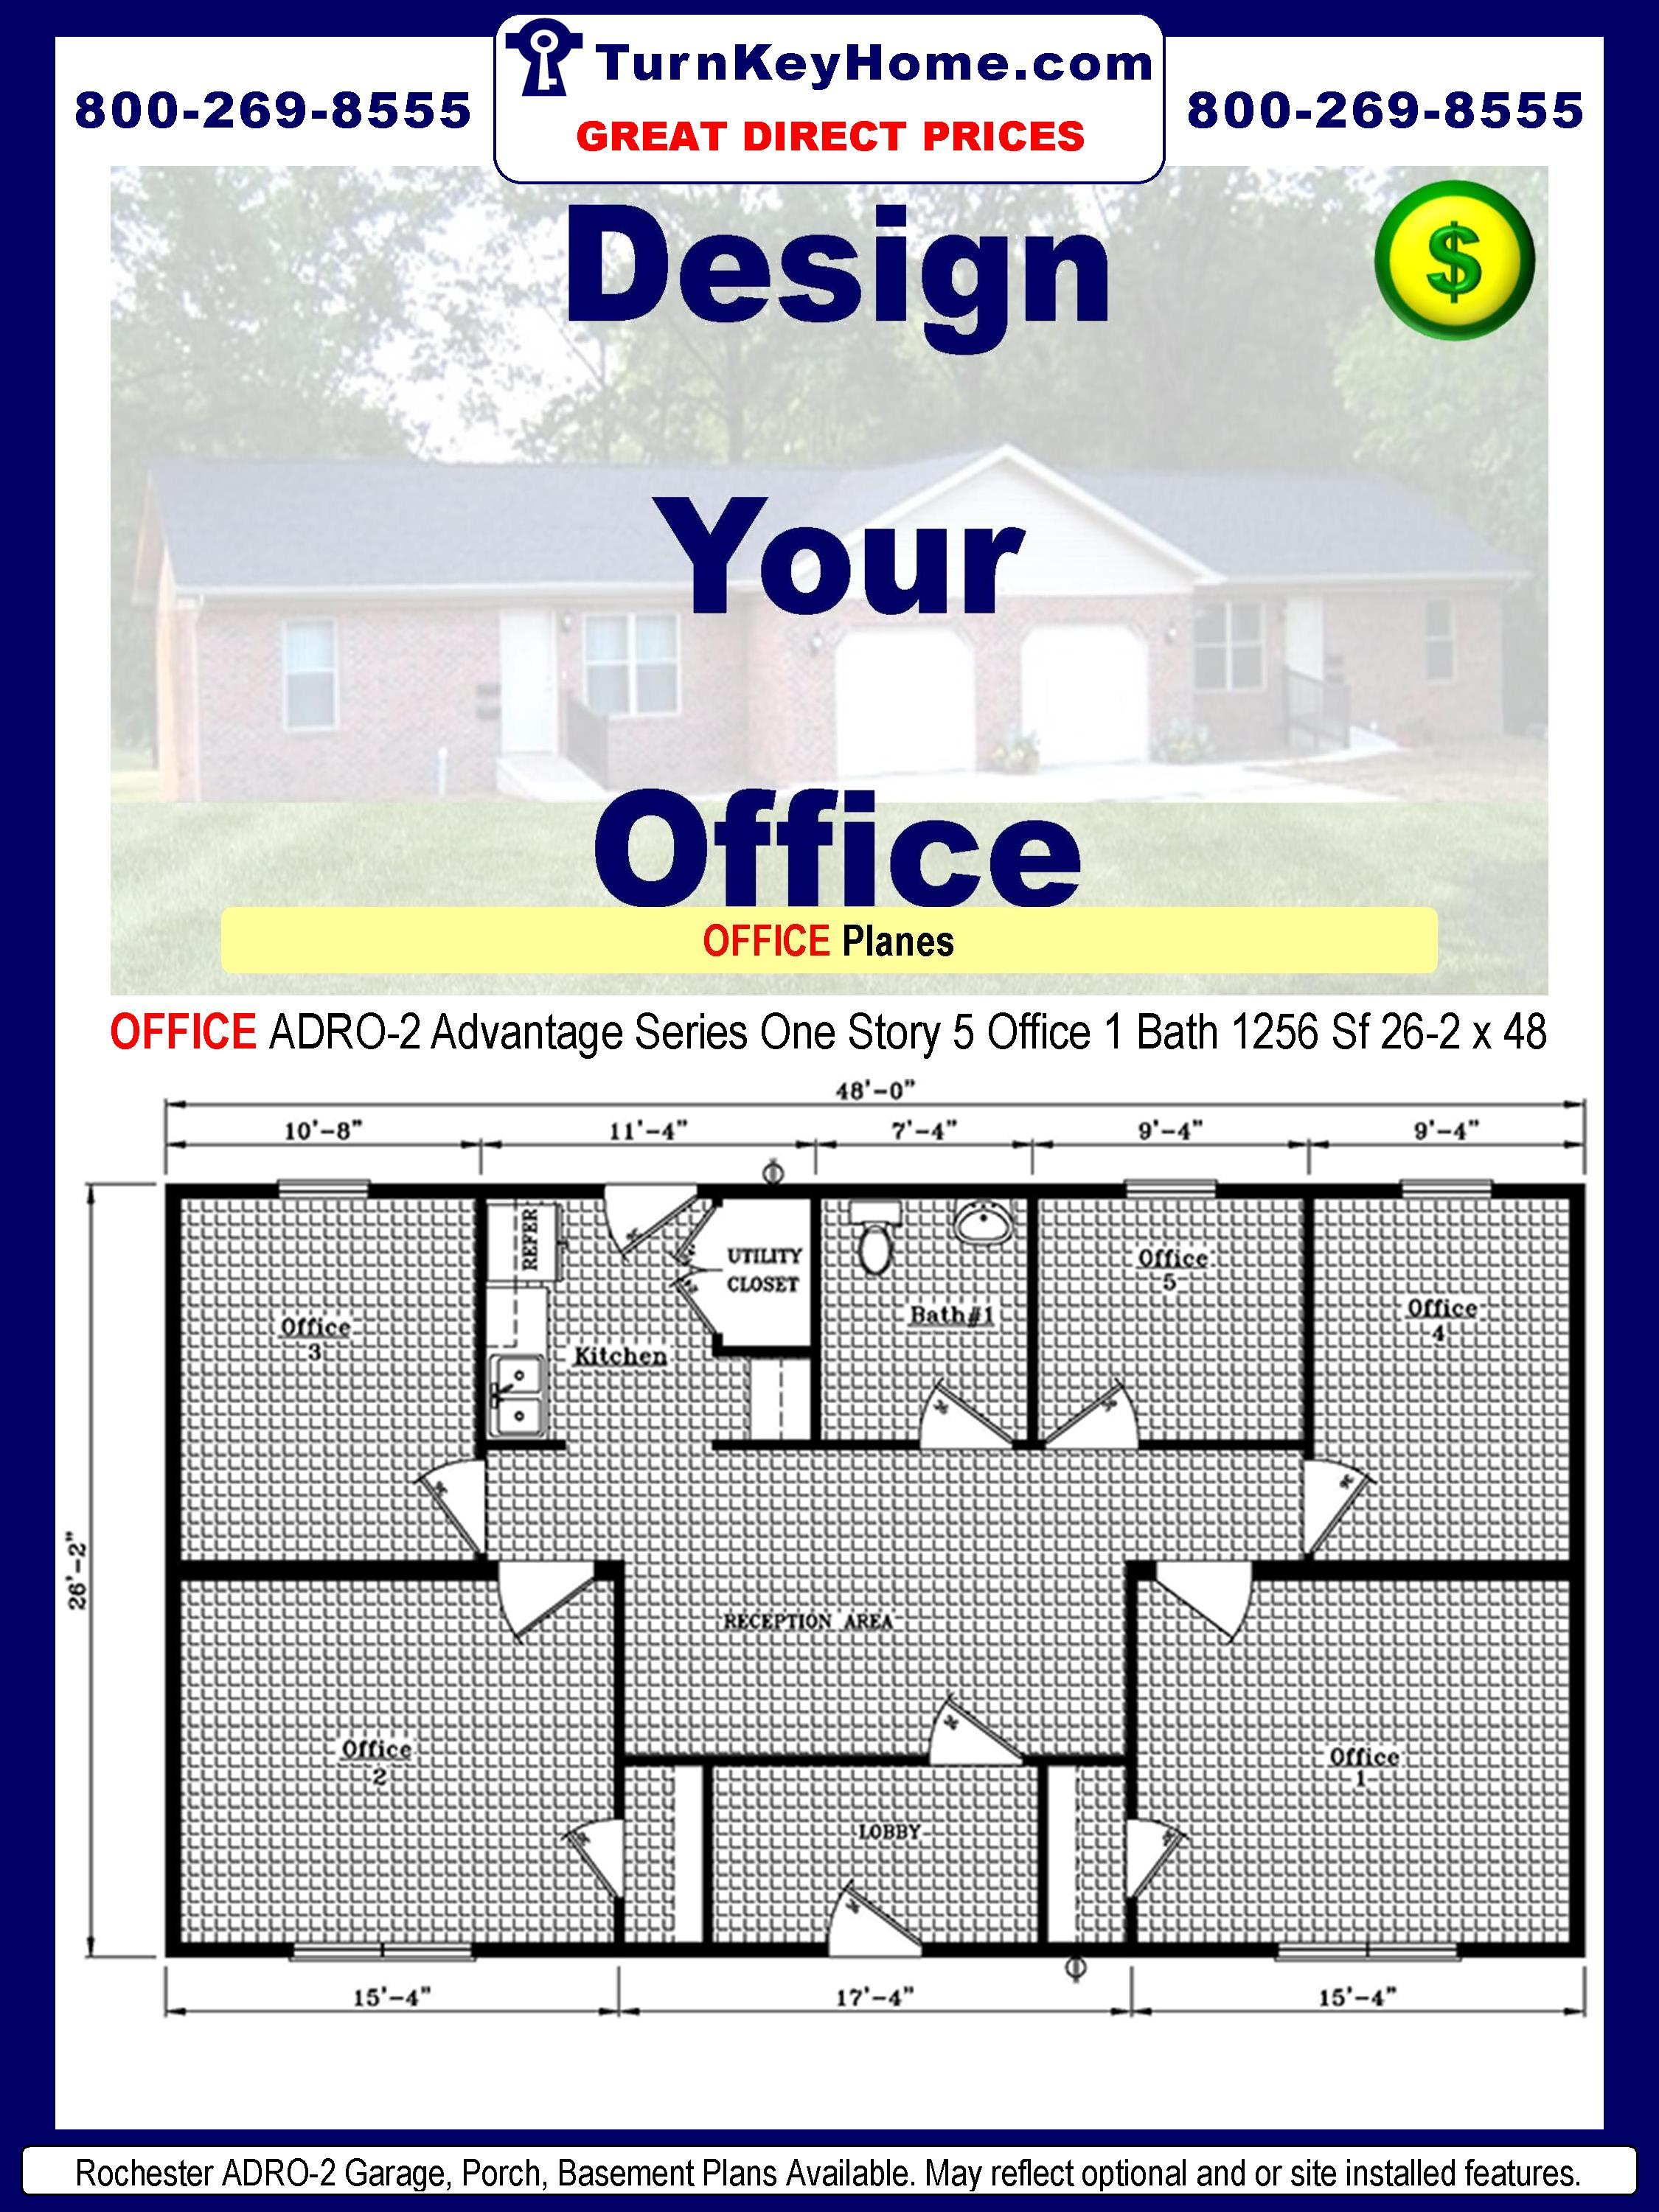 Rochester Homes OFFICE ADRO-2 Advantage Series Modular One Story Office 5 Offices 1 Bath 1256 Sf Each 26-2 x 40.Price